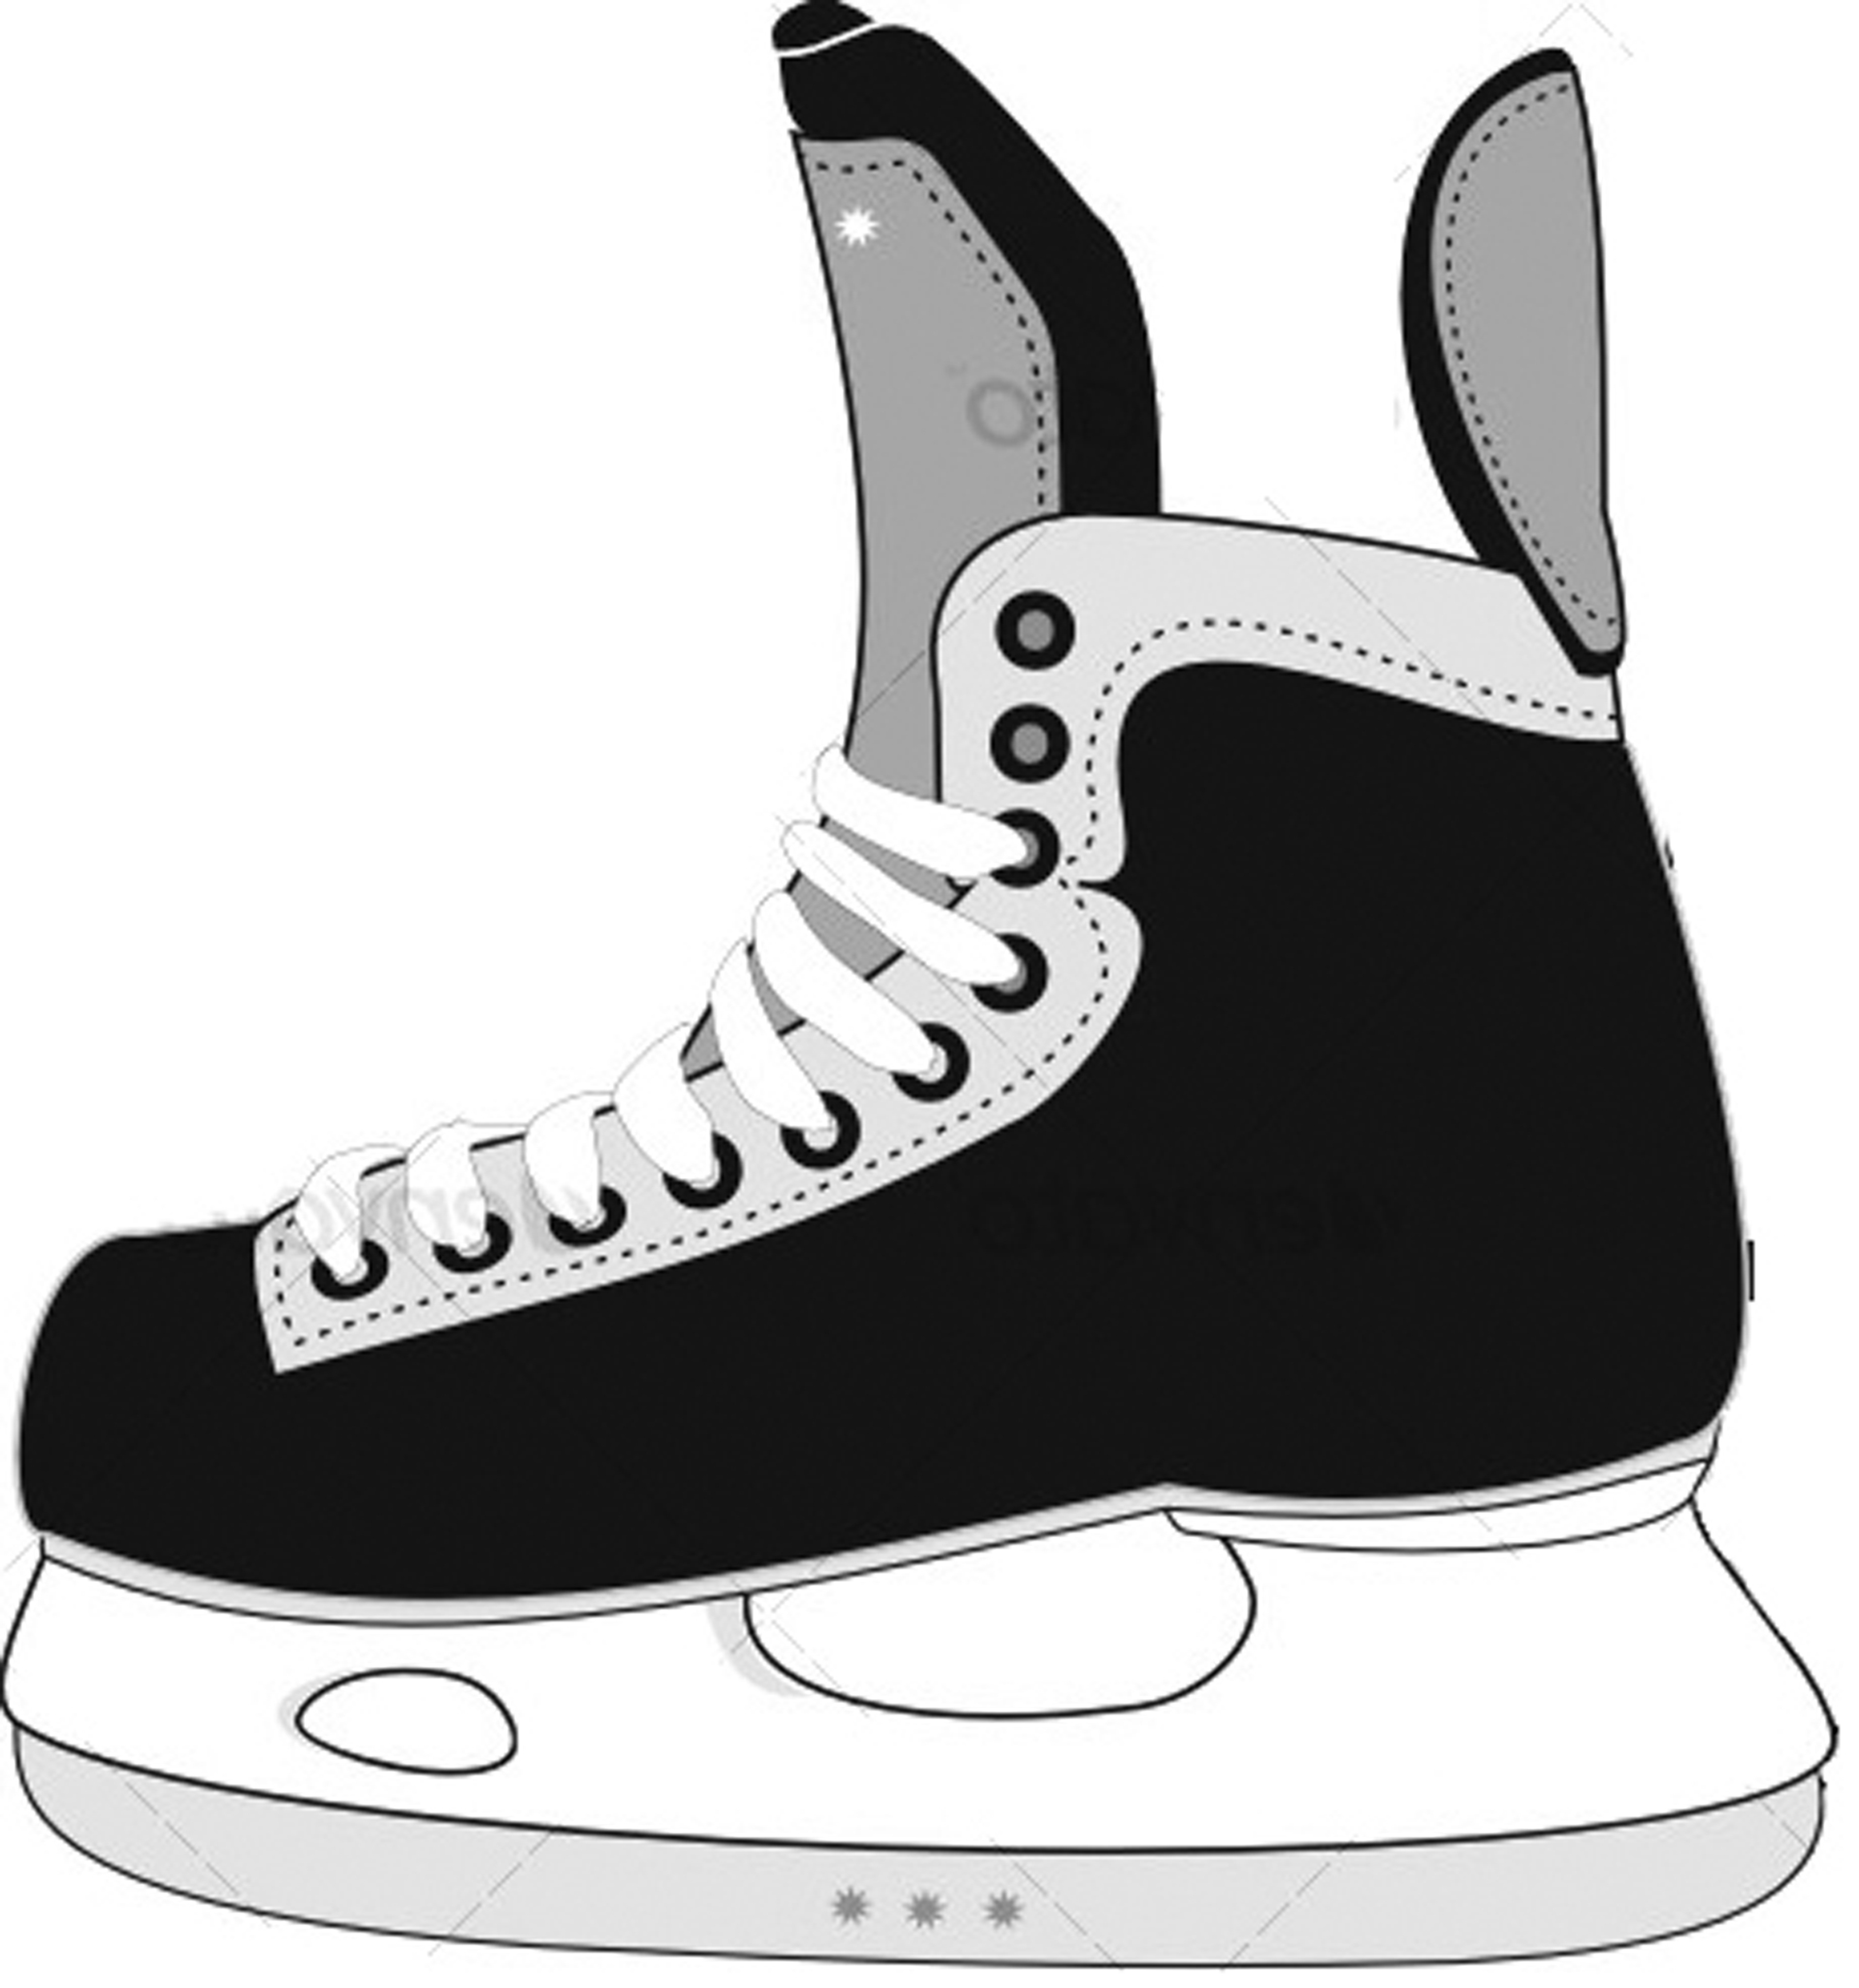 Skate clipart images jpg black and white library Free Skateboarding Cliparts Borders, Download Free Clip Art ... jpg black and white library